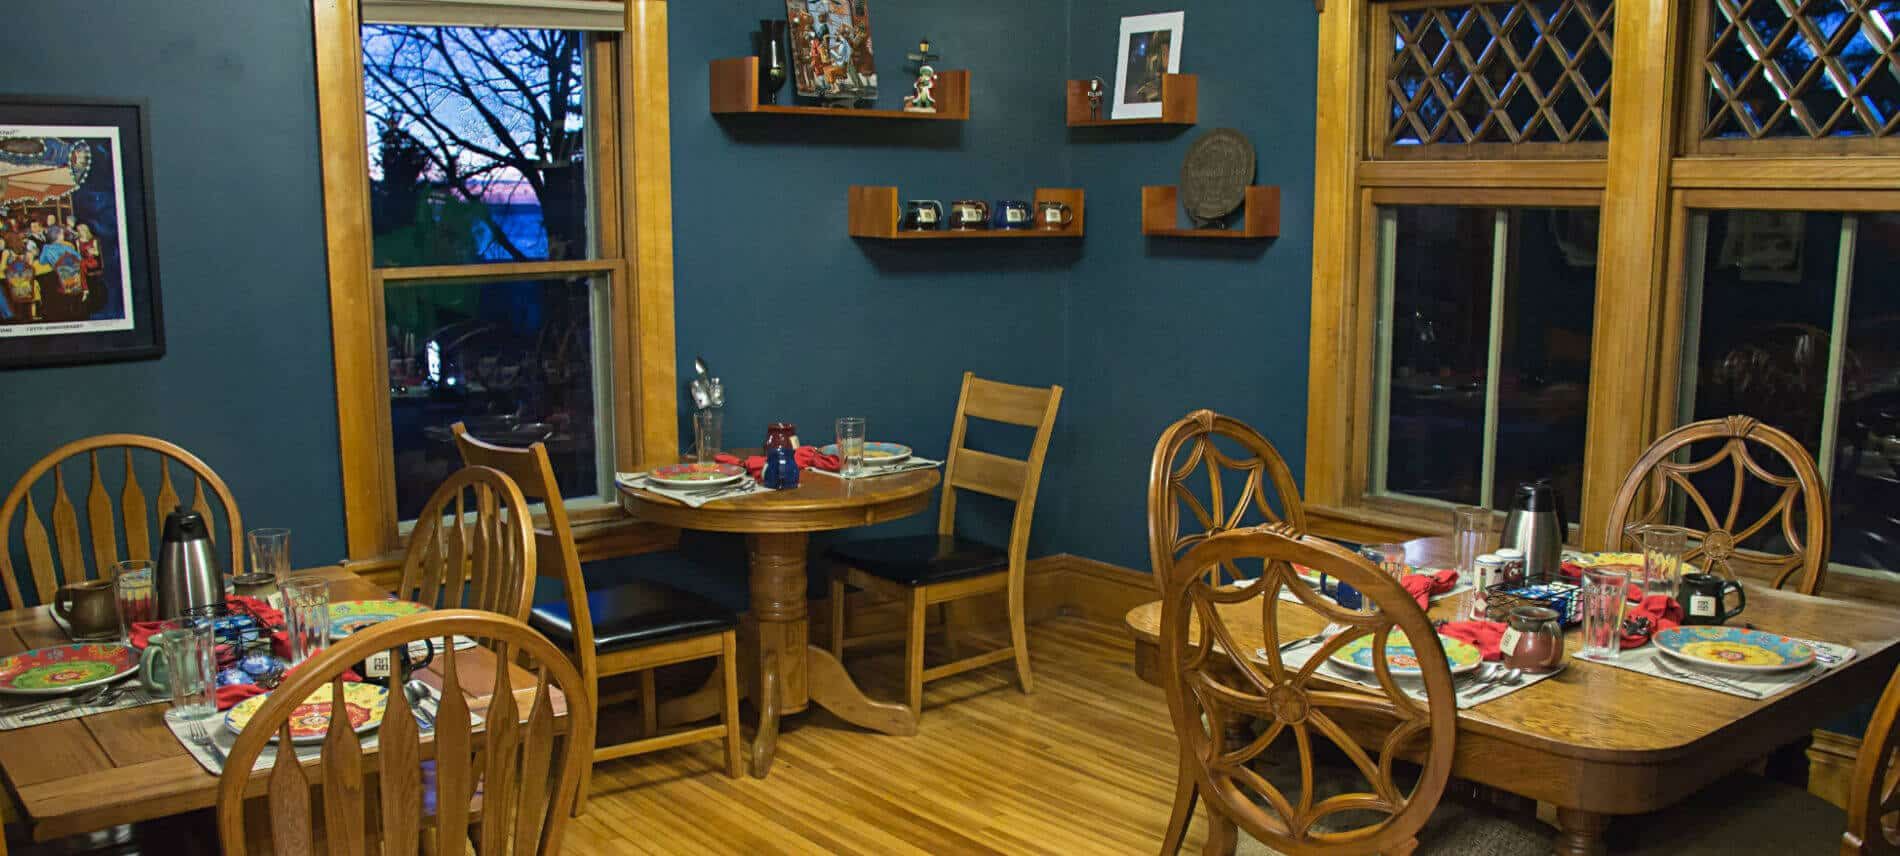 Blue dining room with wood floors, three individual dining tables set for breakfast, and large windows